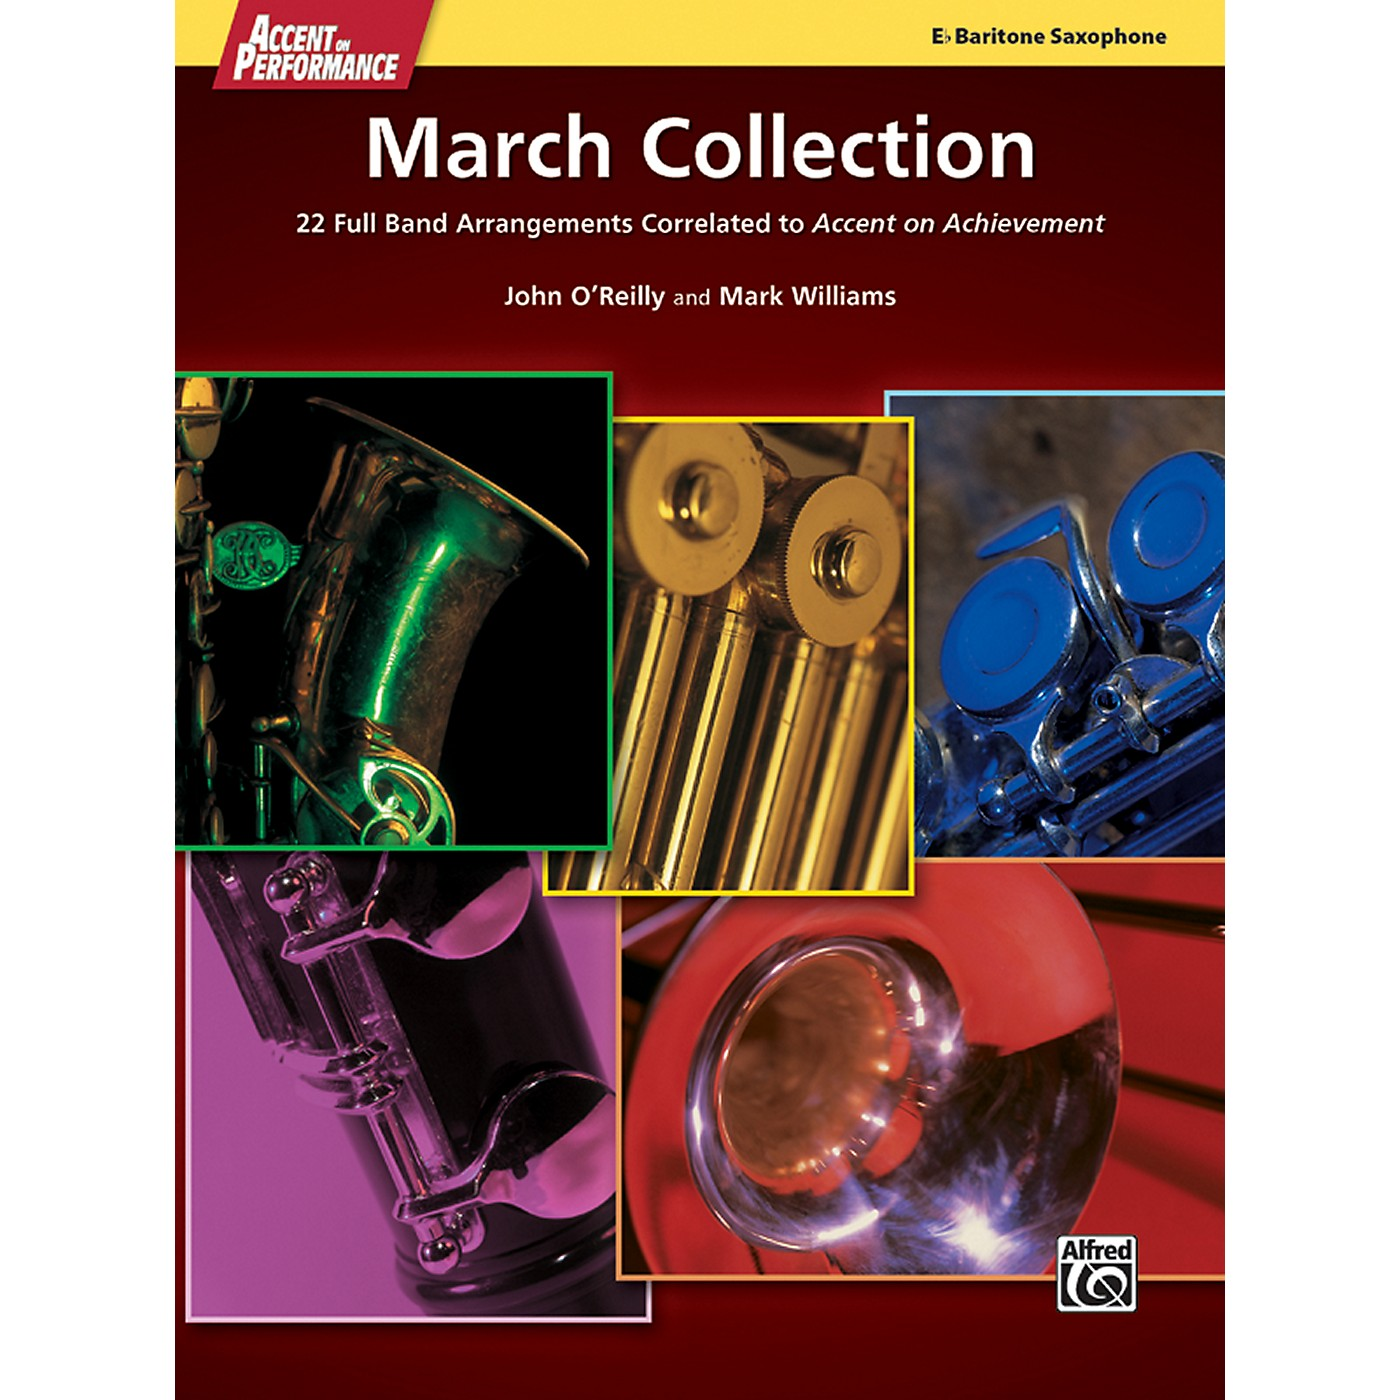 Alfred Accent on Performance March Collection Baritone Saxophone Book thumbnail